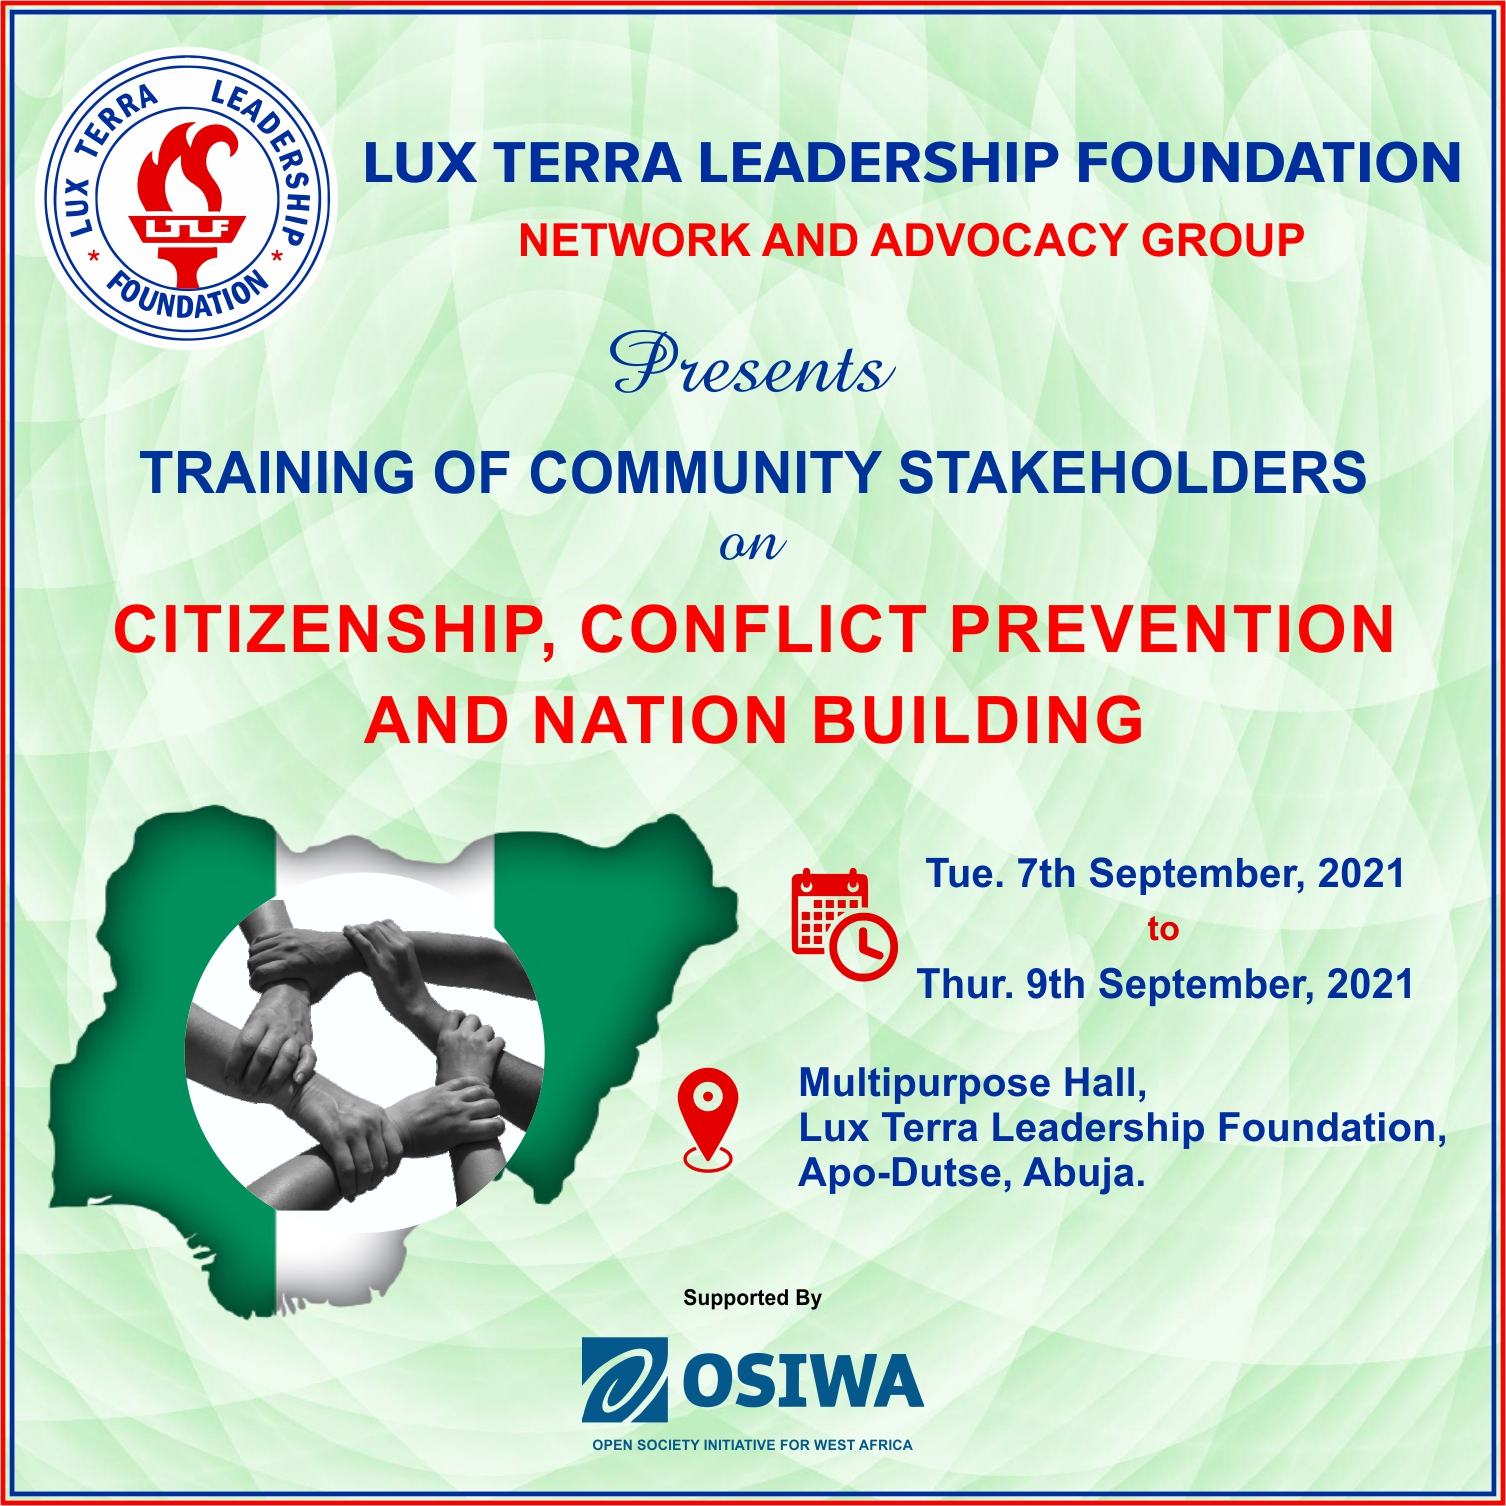 LUX TERRA NETWORK AND ADVOCACY GROUP OF LUX TERRA LEADERSHIP FOUNDATION HOLDS SECOND COMMUNITY STAKEHOLDERS WORKSHOP IN ABUJA